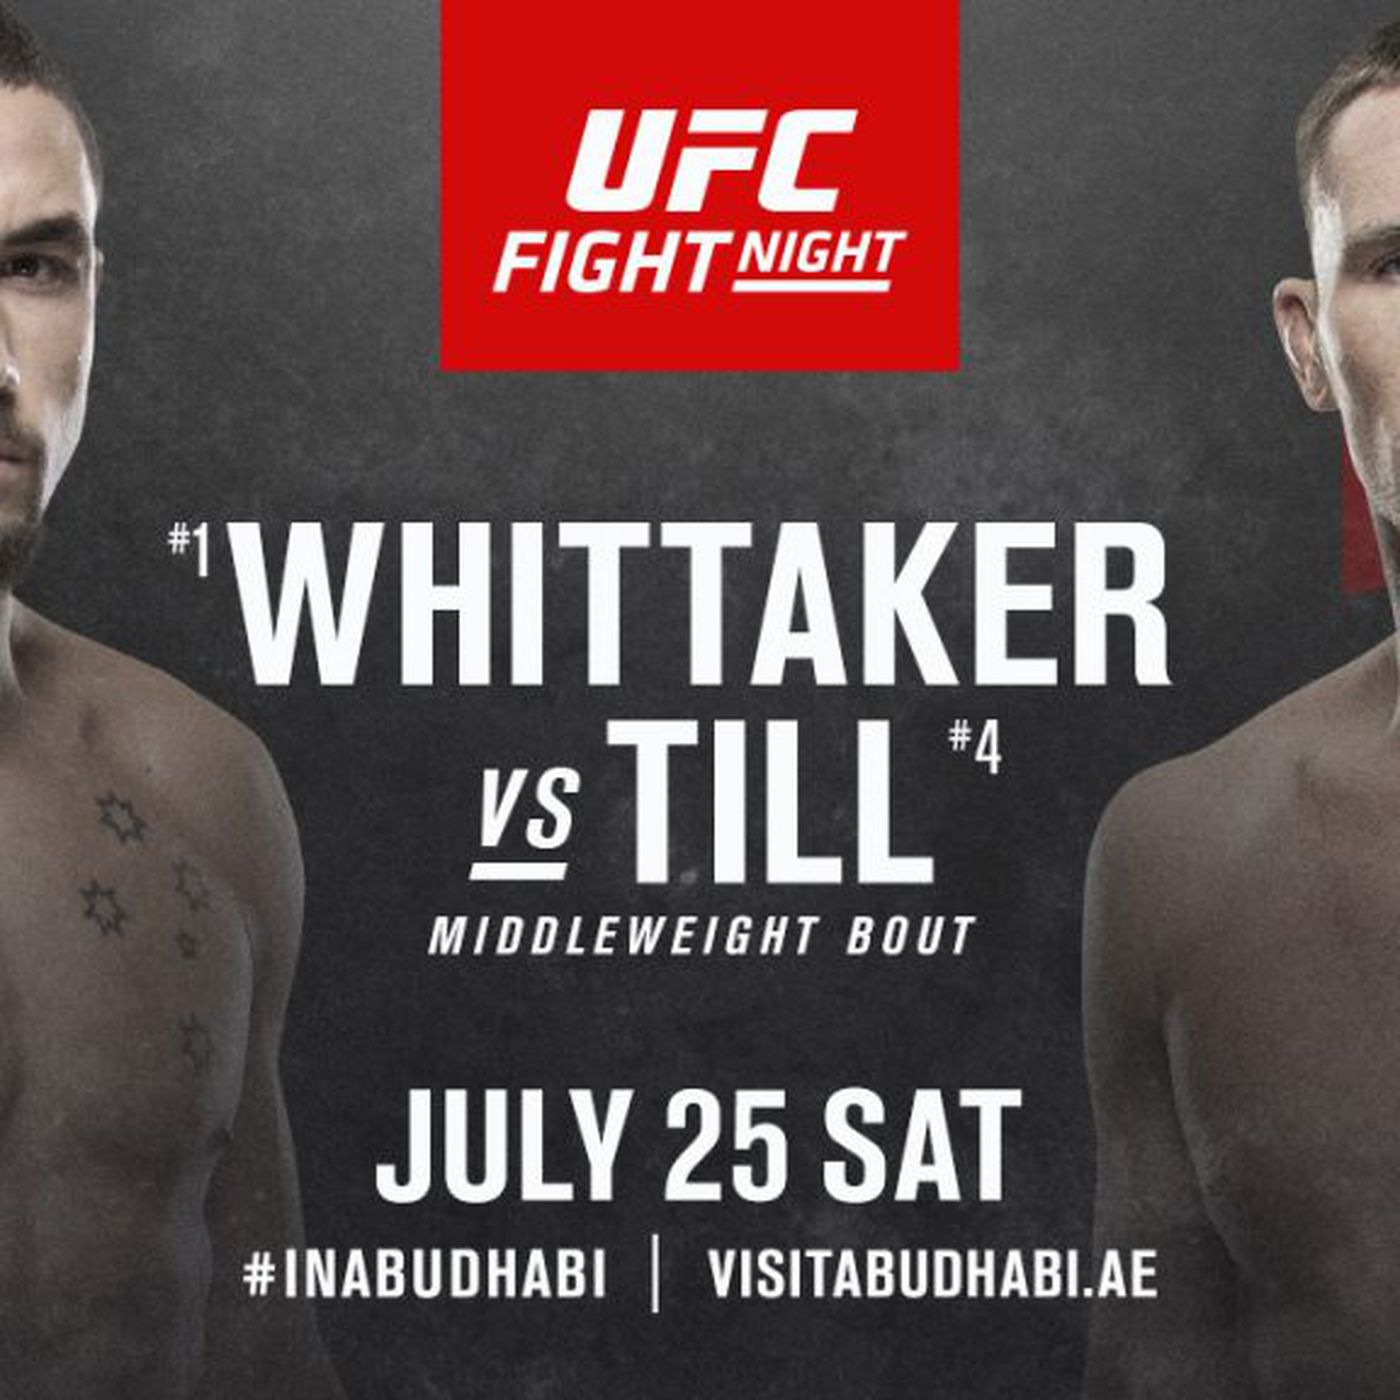 Latest Ufc On Espn 14 Fight Card Whittaker Vs Till Line Up For July 25 On Fight Island Mmamania Com